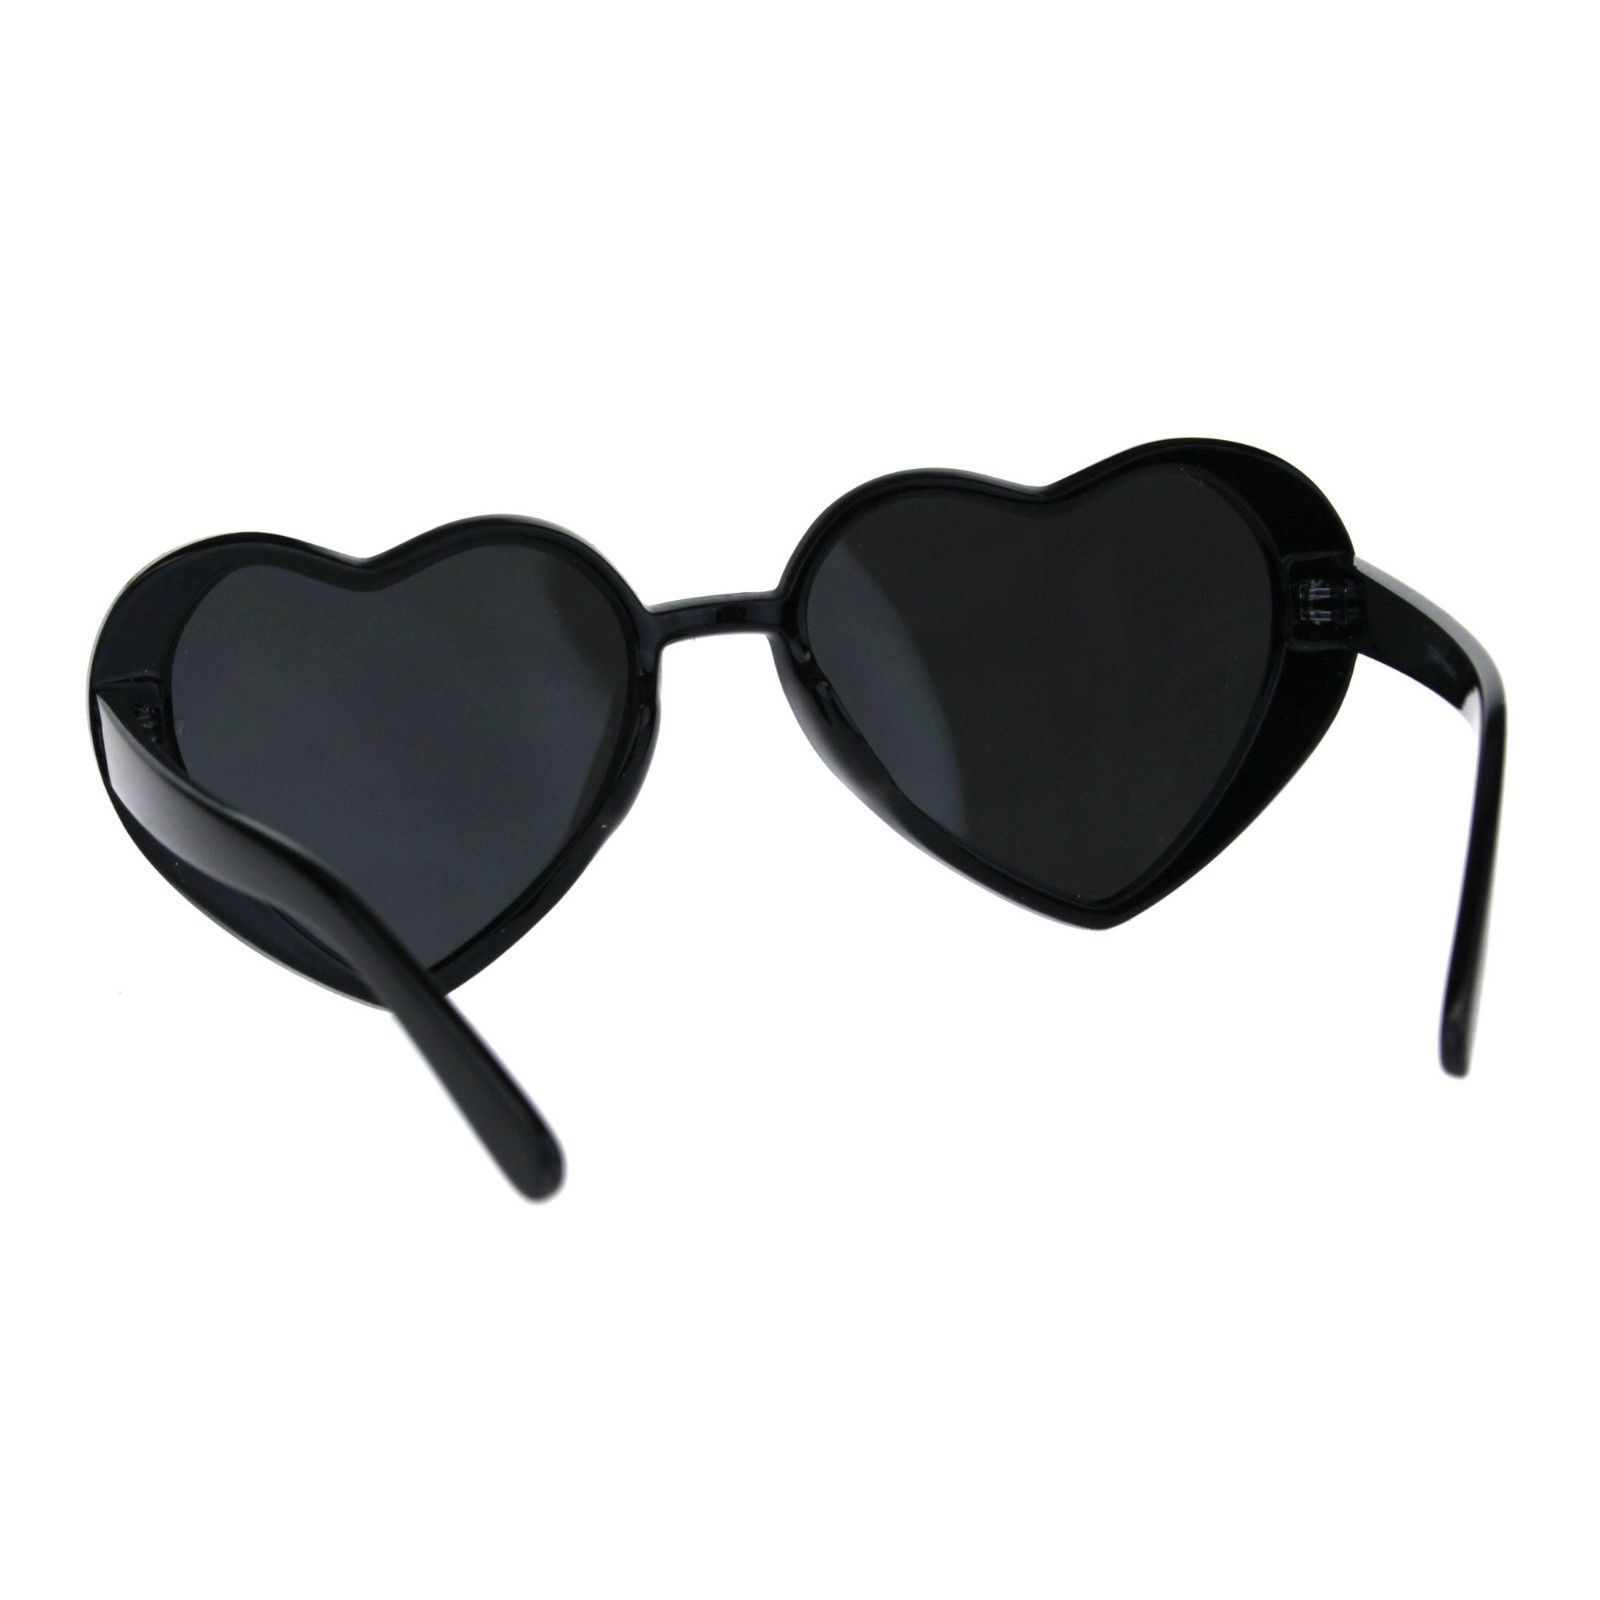 Oversized Heart Shape Sunglasses Womens Fashion Mirrored Lens Shades image 7